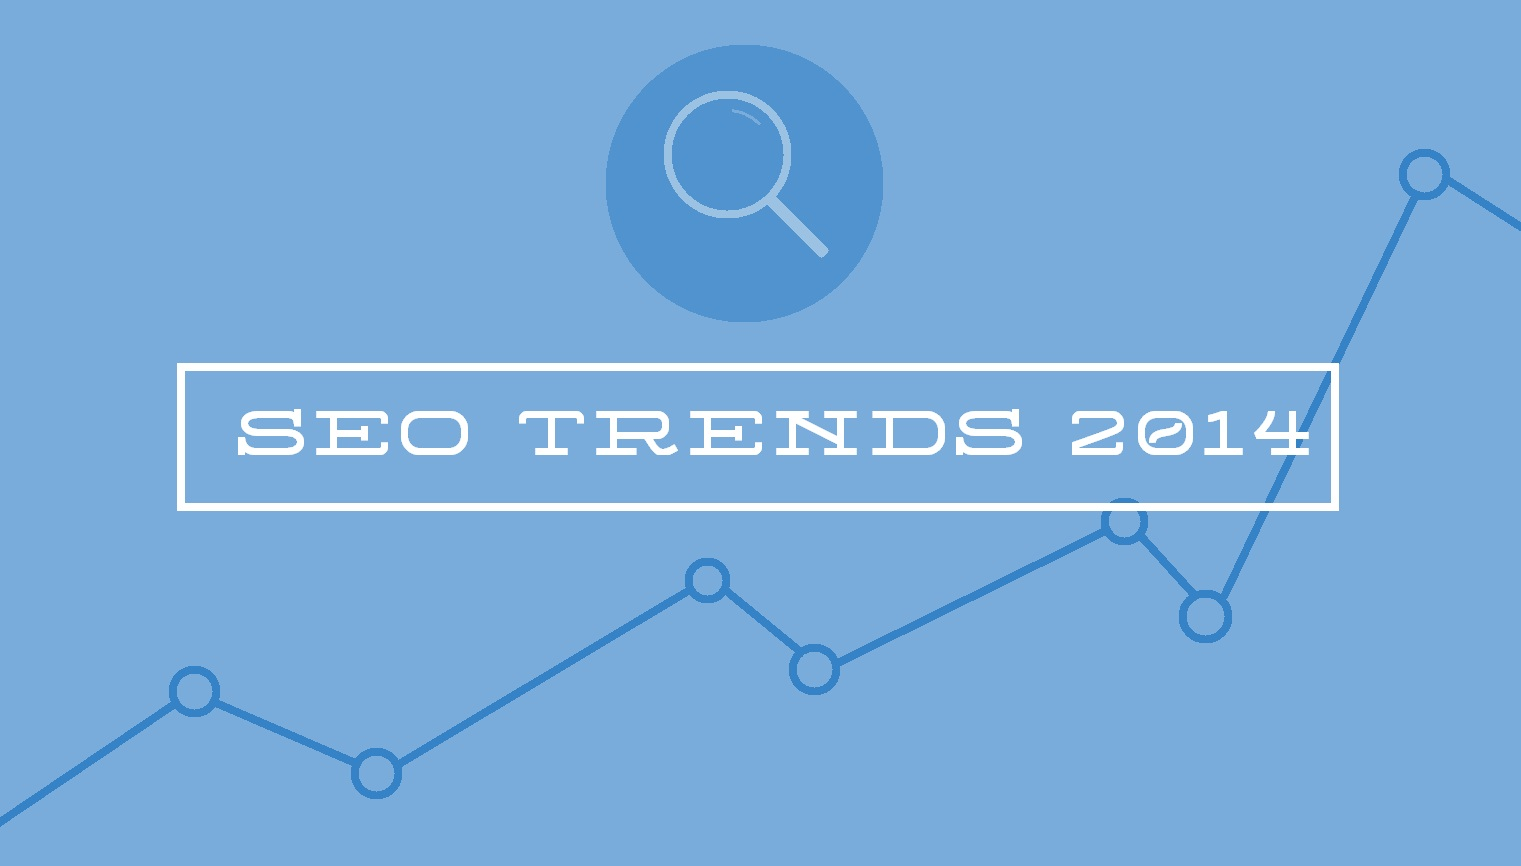 Search Engine Marketing Trends 2014 - infographic